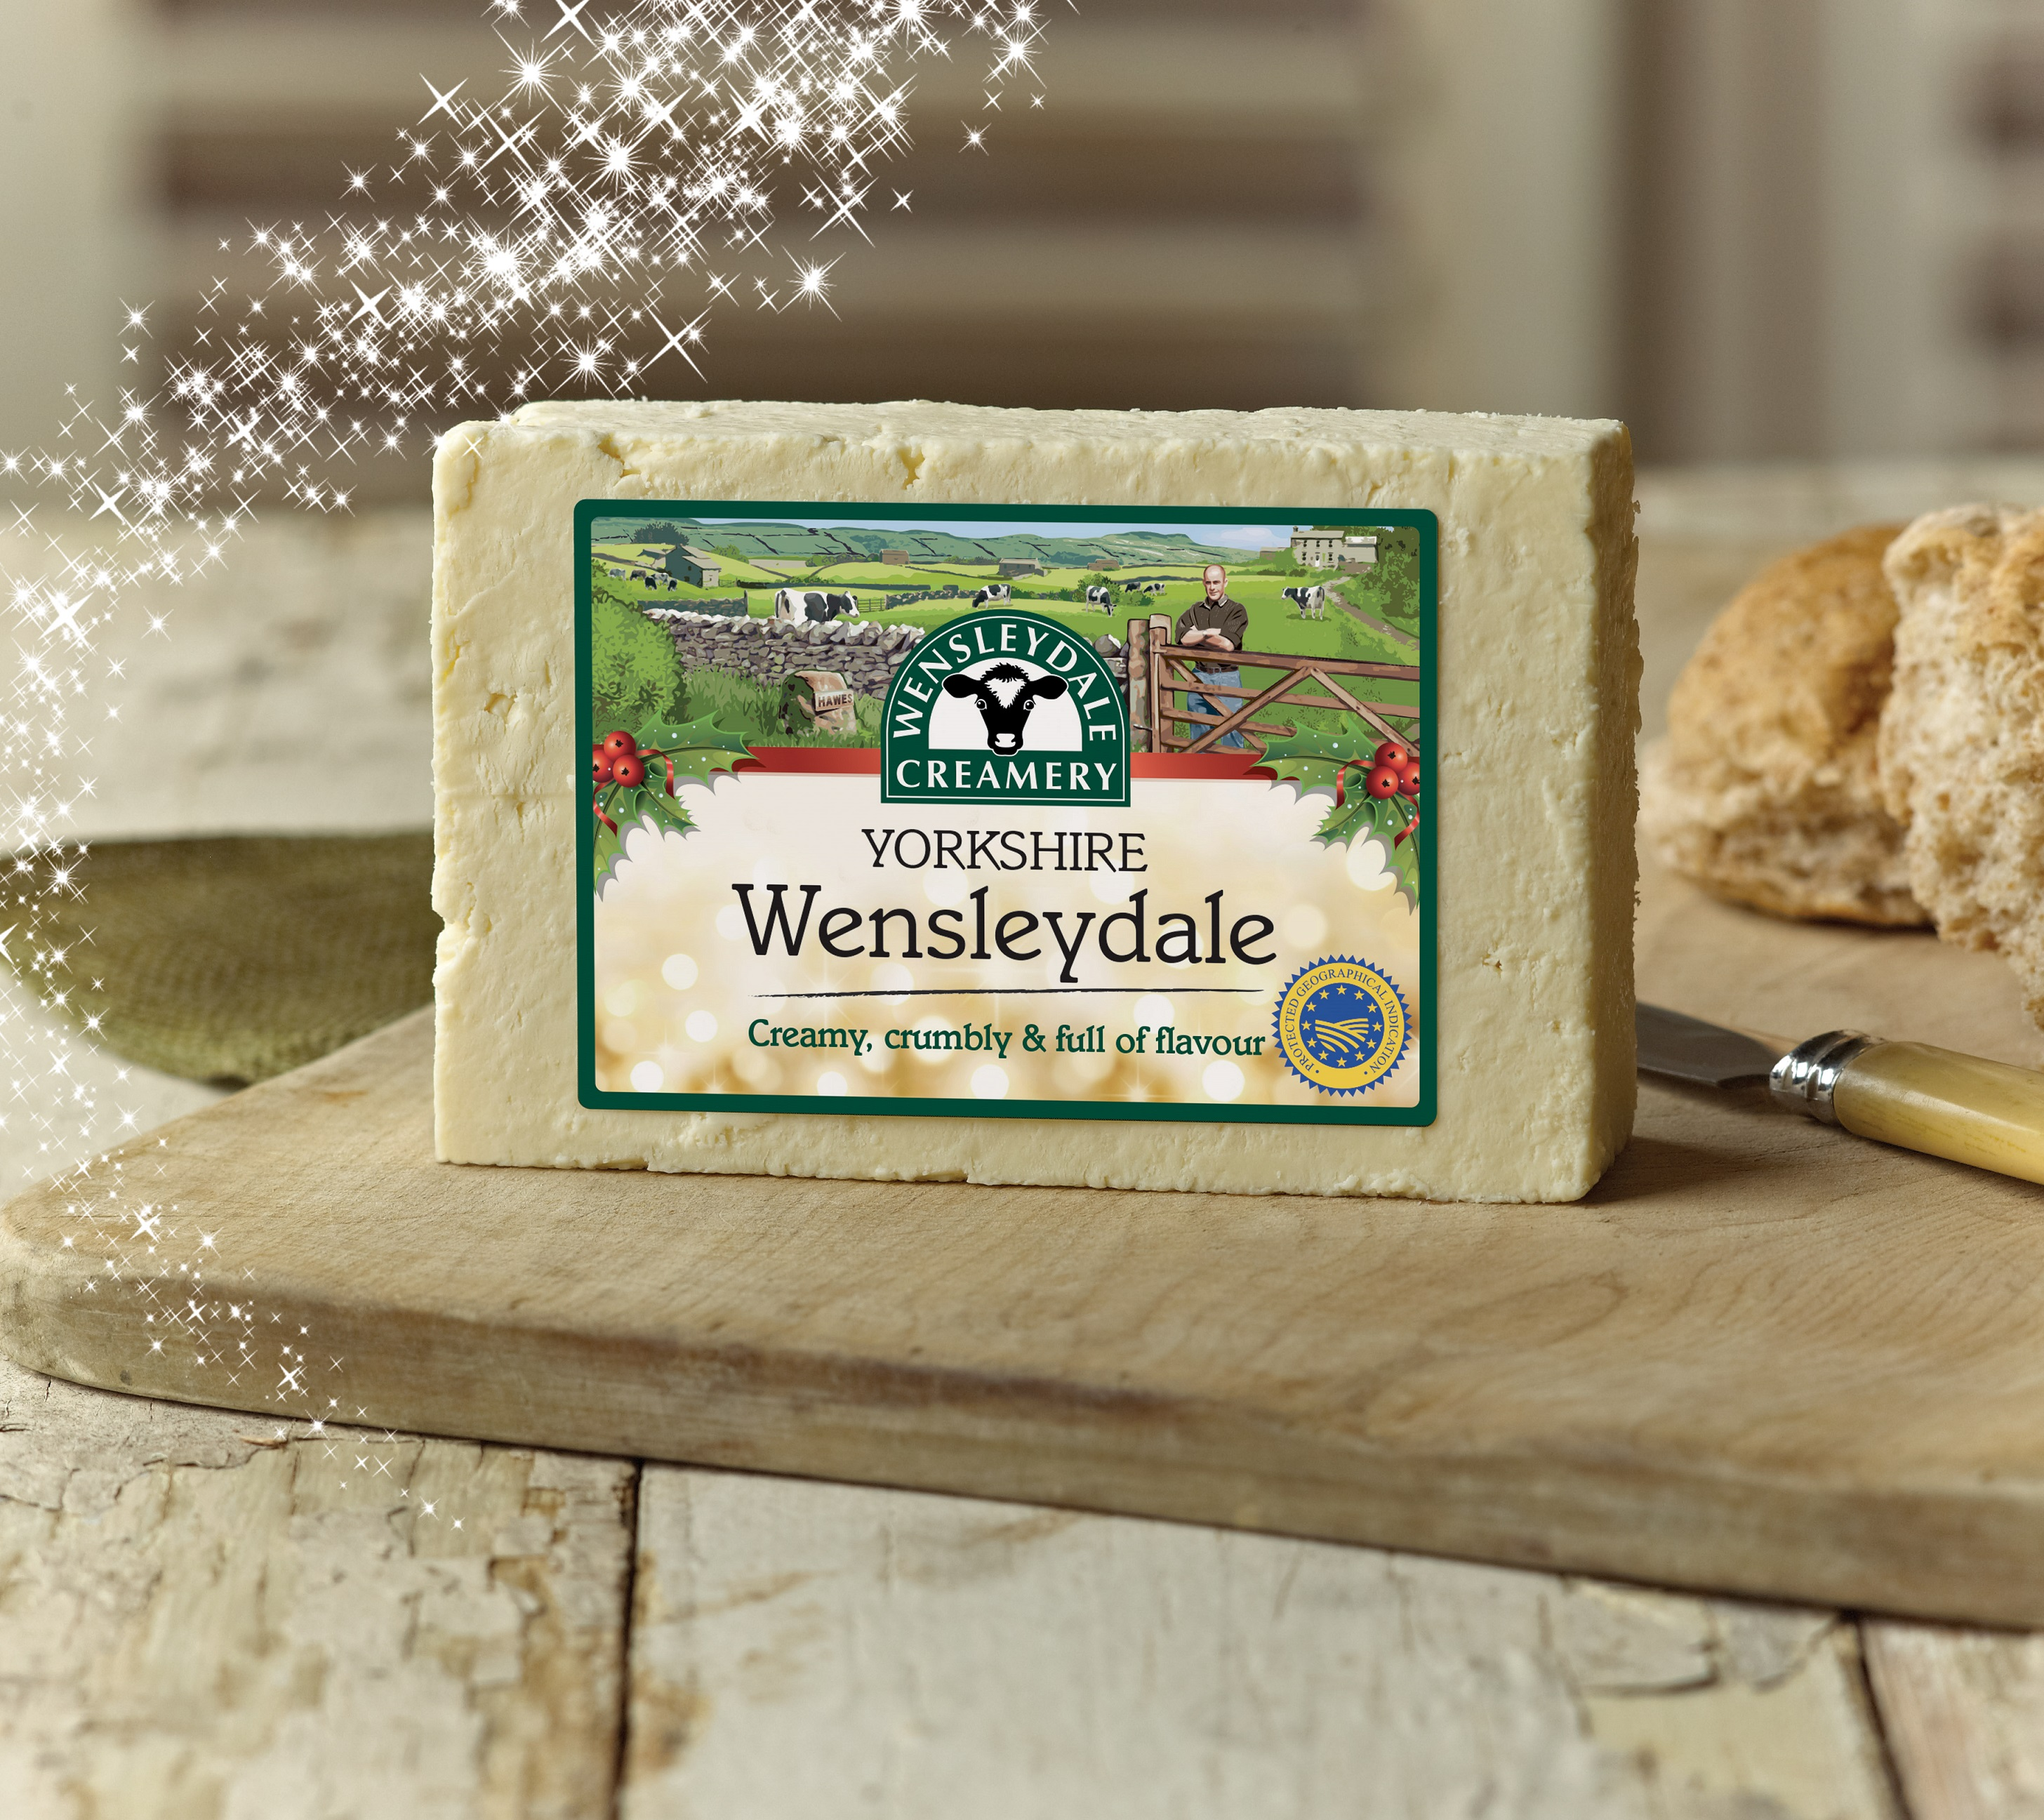 The Wensleydale Creamery Adds a Festive Touch to its Yorkshire Wensleydale Cheese Packaging